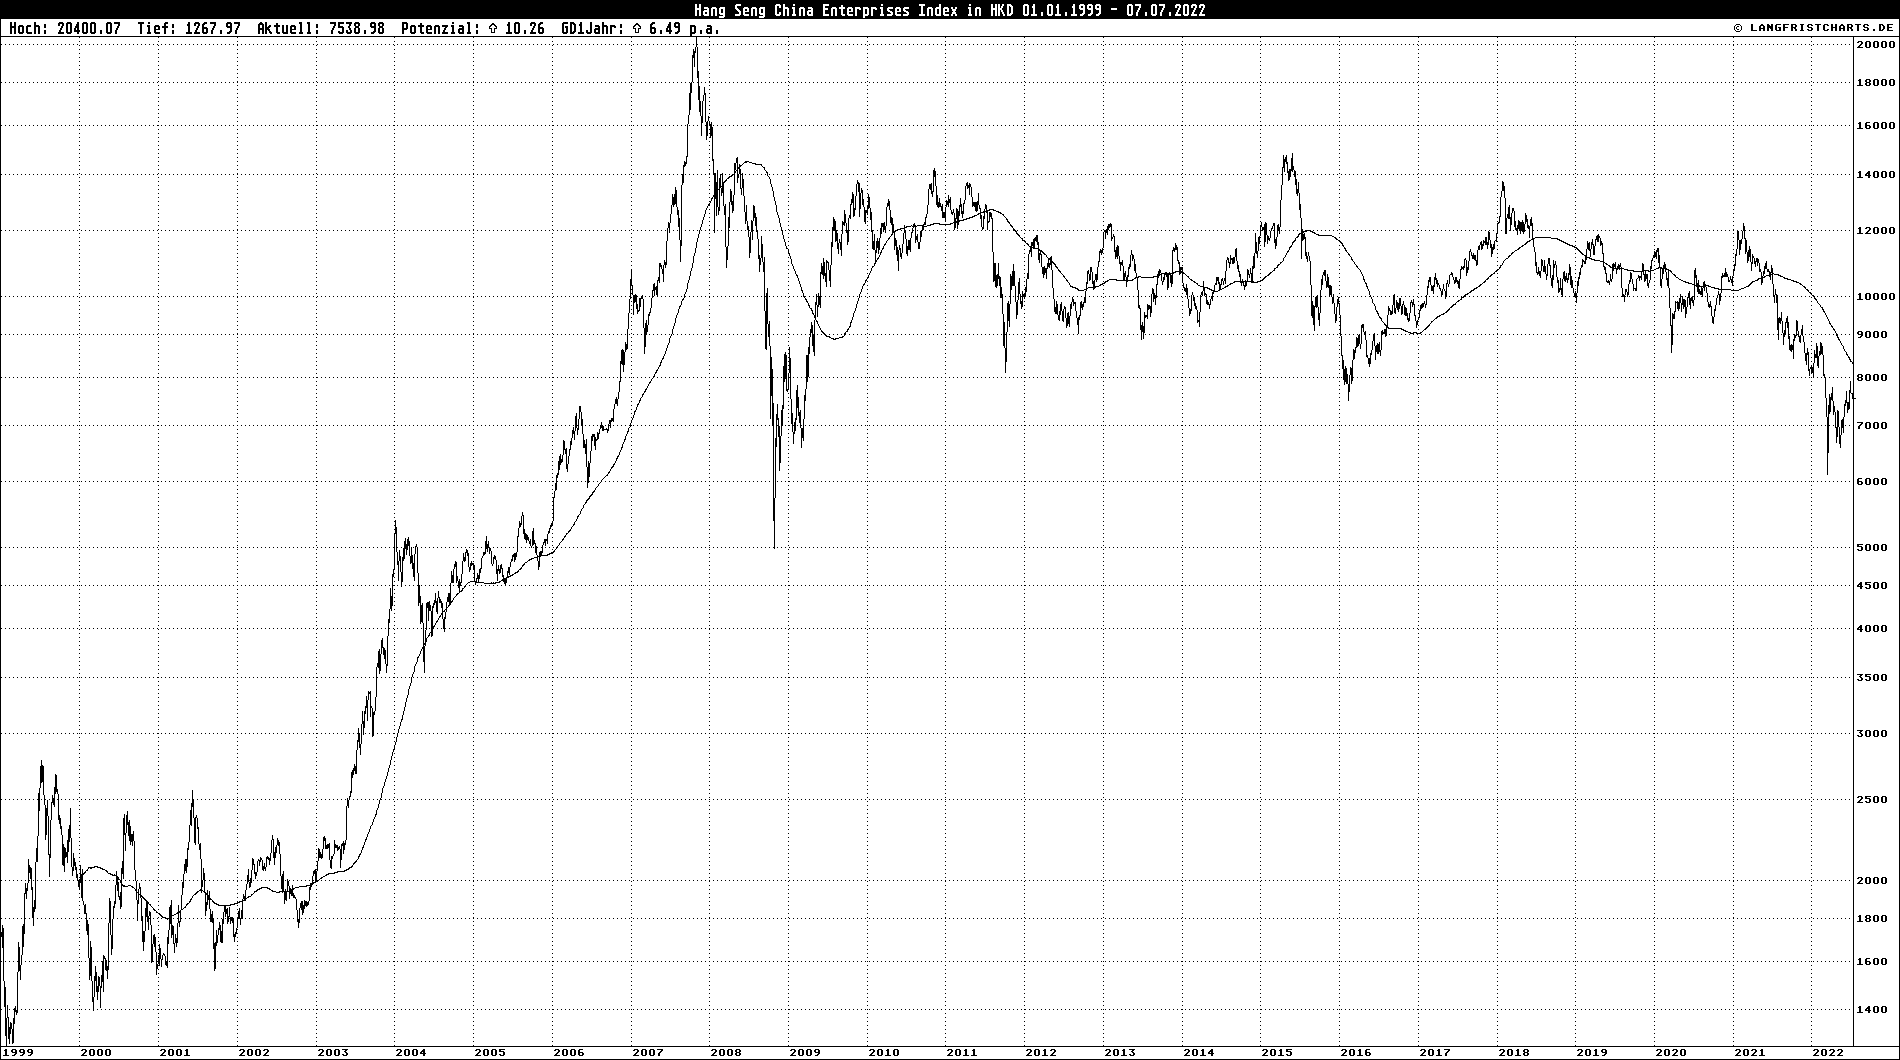 Logarithmischer Linienchart: Hang Seng China Enterprises Index